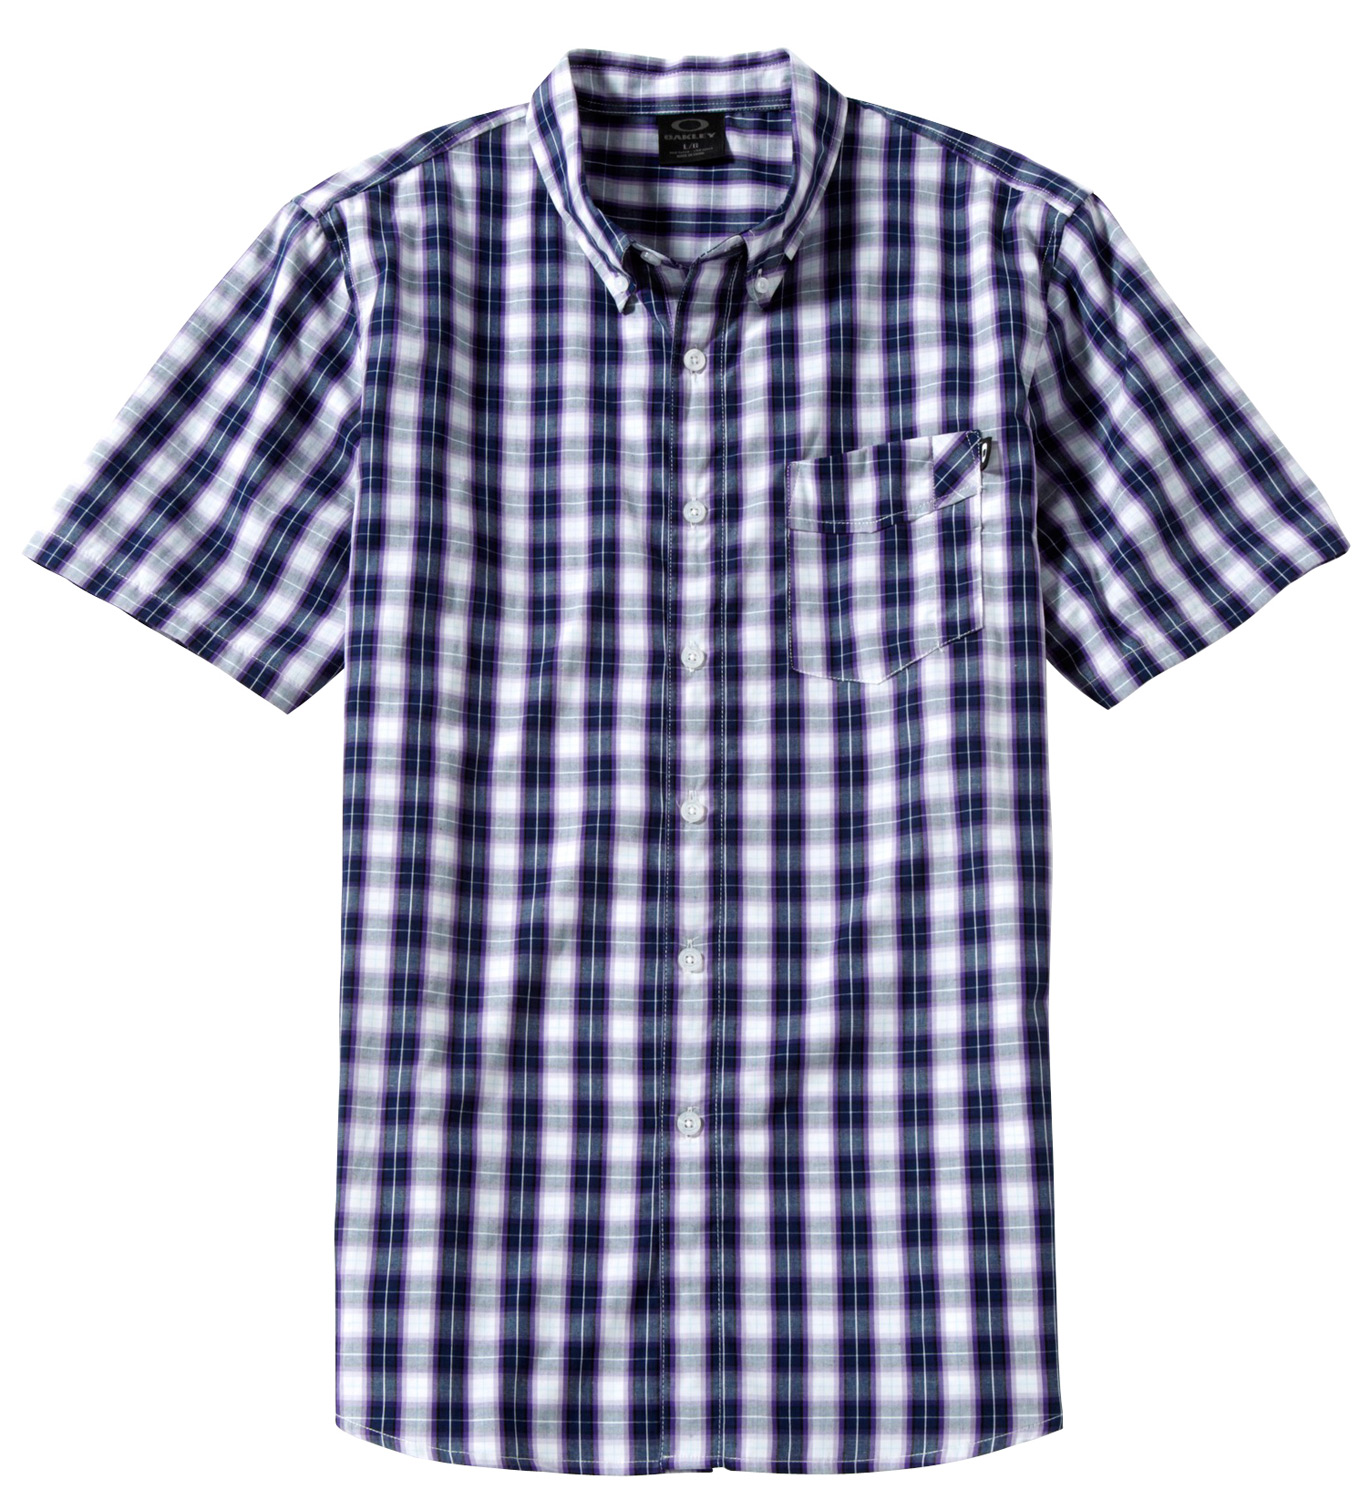 Yarn dye micro check shirt with button placket, angled chest pocket, front flag and back logo embroidery.Key Features of the Oakley Zipload Shirt: 100% cotton - $26.95